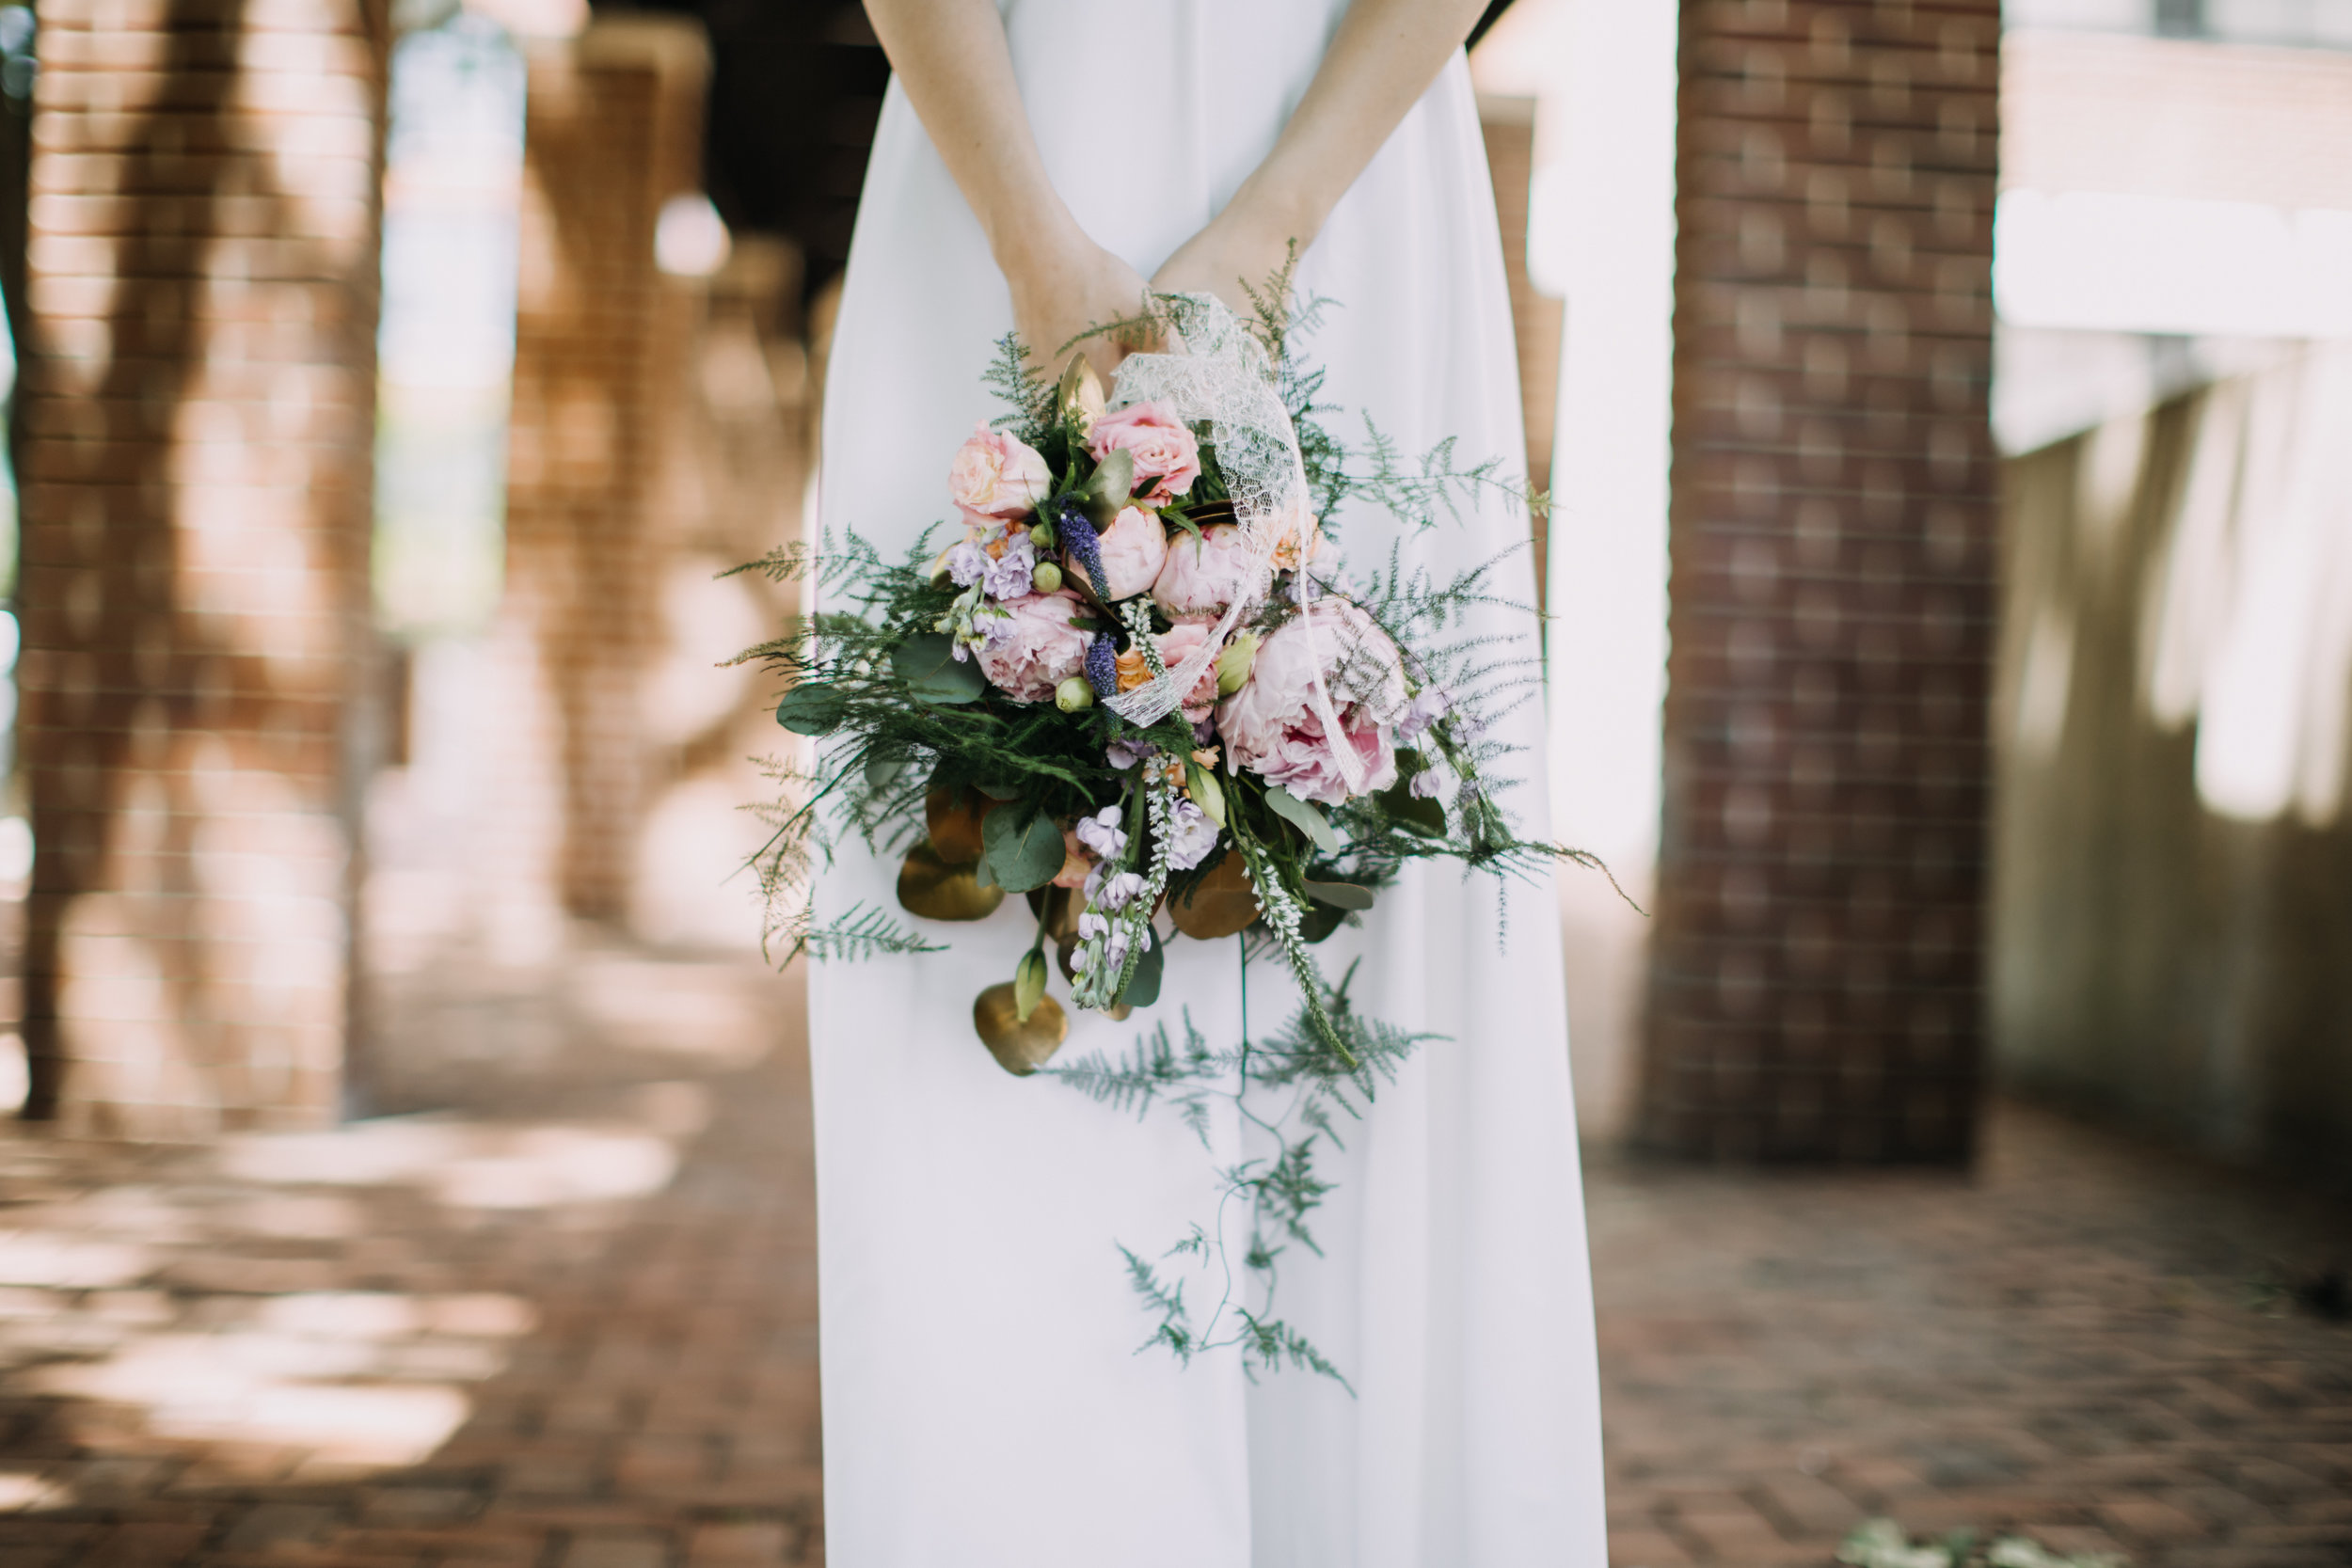 - styled wedding florals & design